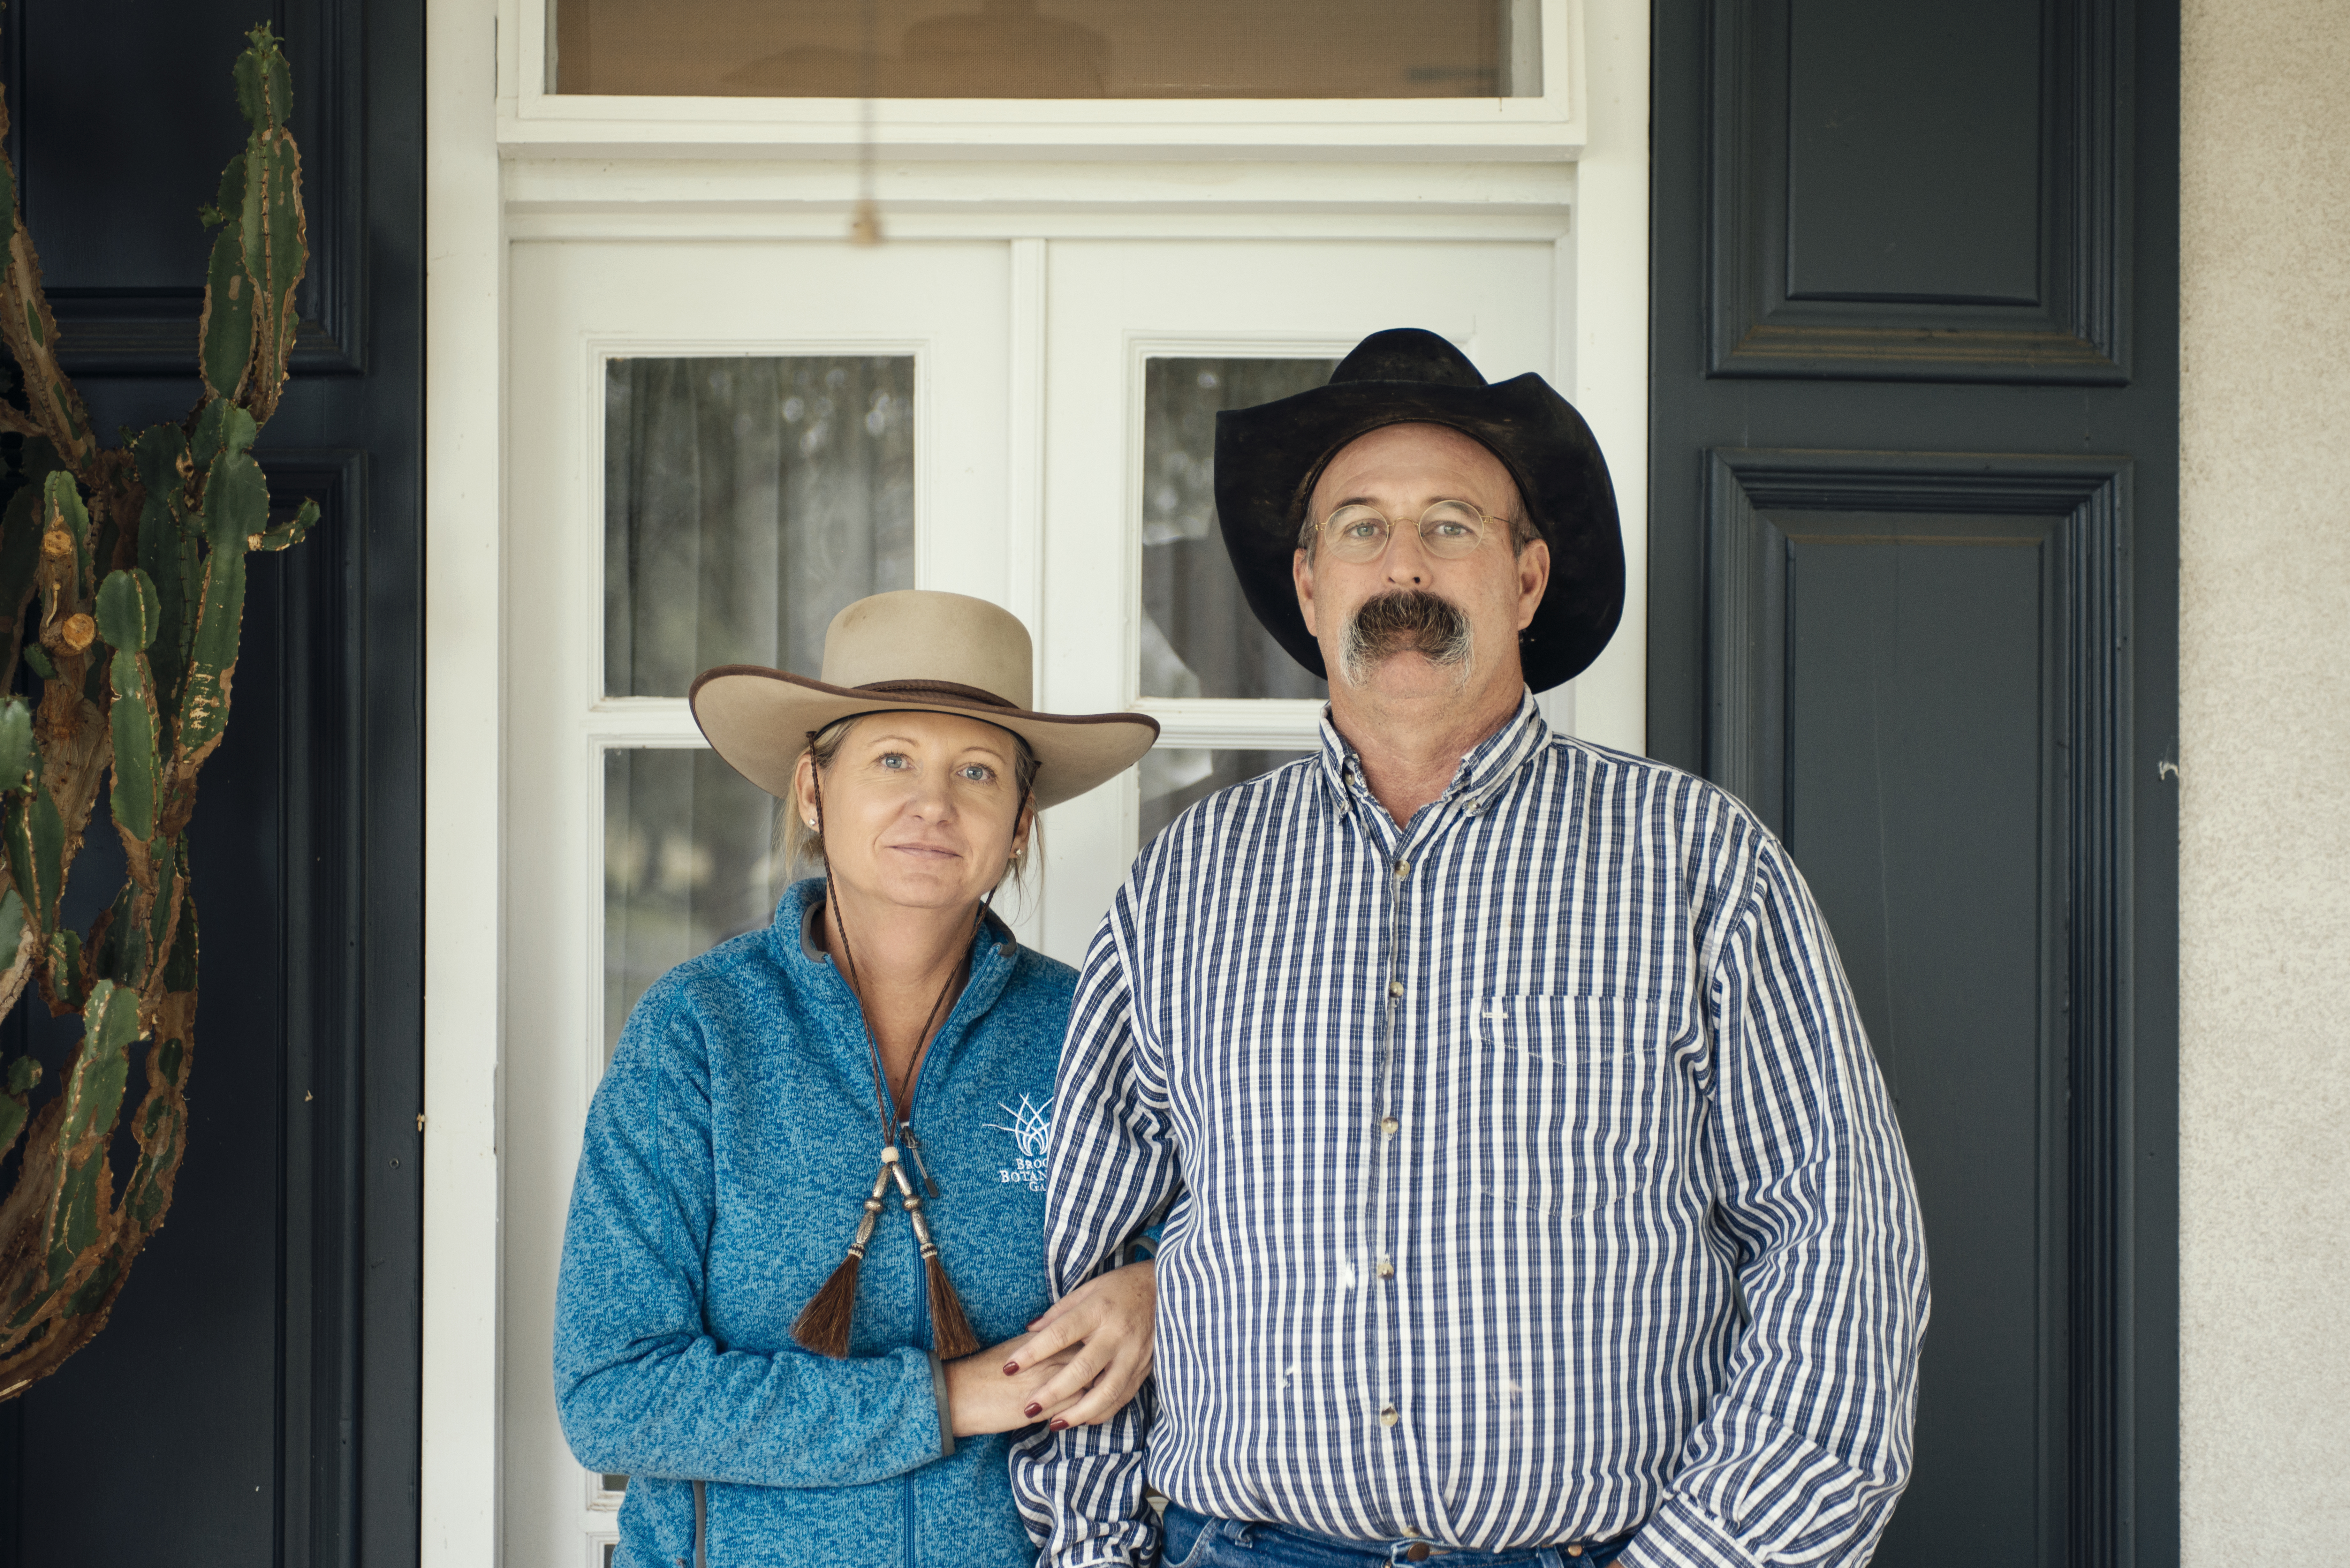 1. A picture of Scott McIvor's great grandfather. 2. Scott and Julie McIvor pose for a portrait in front of their ranch.